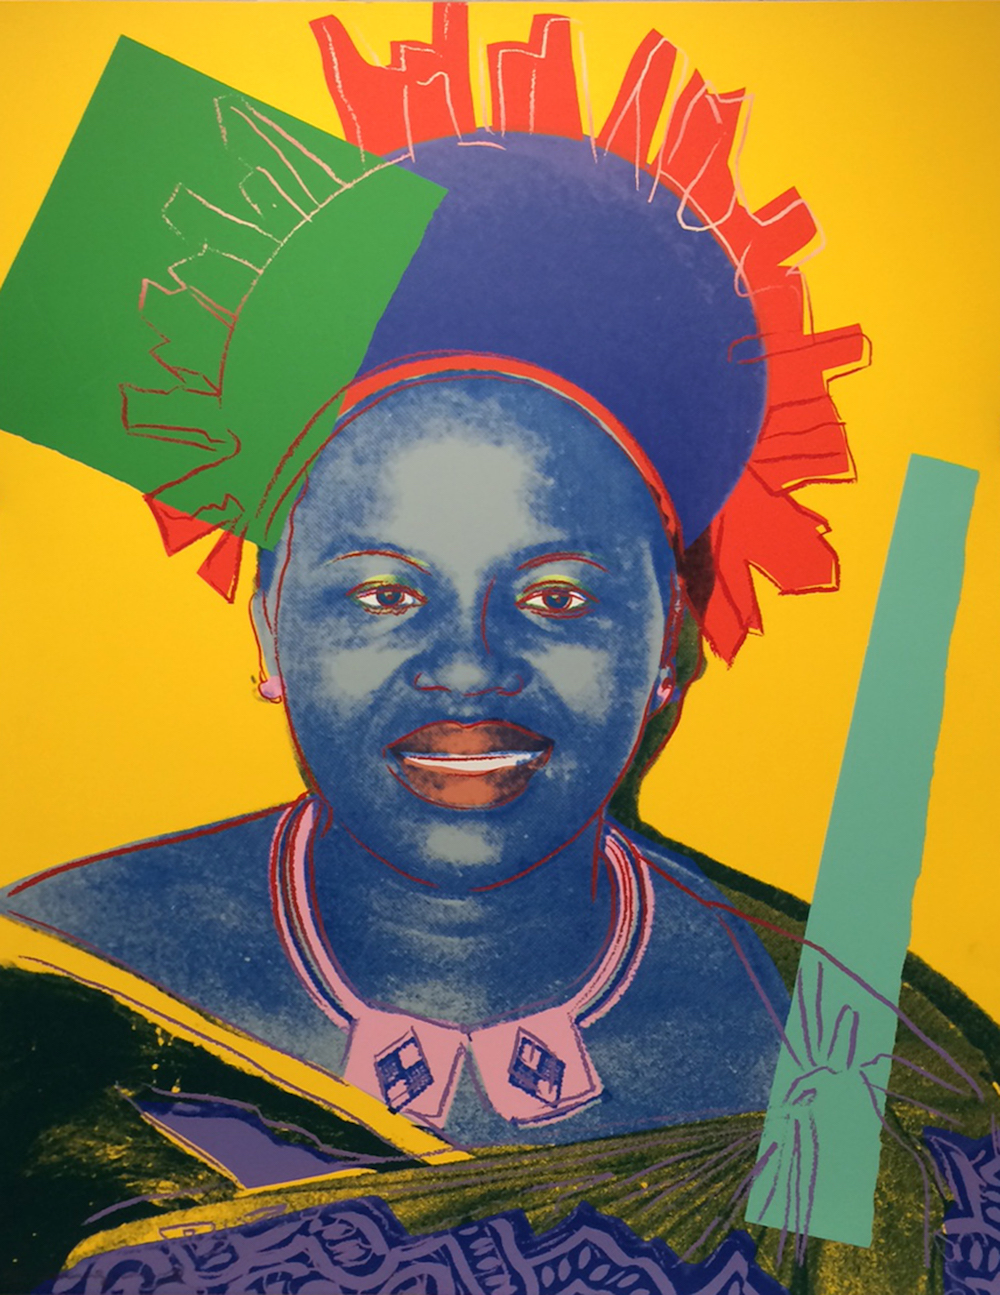 Andy Warhol (American, 1928-1987) Queen Ntombi Twala of Swaziland (Reigning Queens Royal Edition), 1985 Screenprint and diamond dust on Lenox Museum Board Extra, out of edition. Designated for research and education purposes only. 39 3/8 x 31 1/2 in. Gift of The Andy Warhol Foundation for the Visual Arts, Inc., HU2014.11 © The Andy Warhol Foundation for the Visual Arts, Inc.